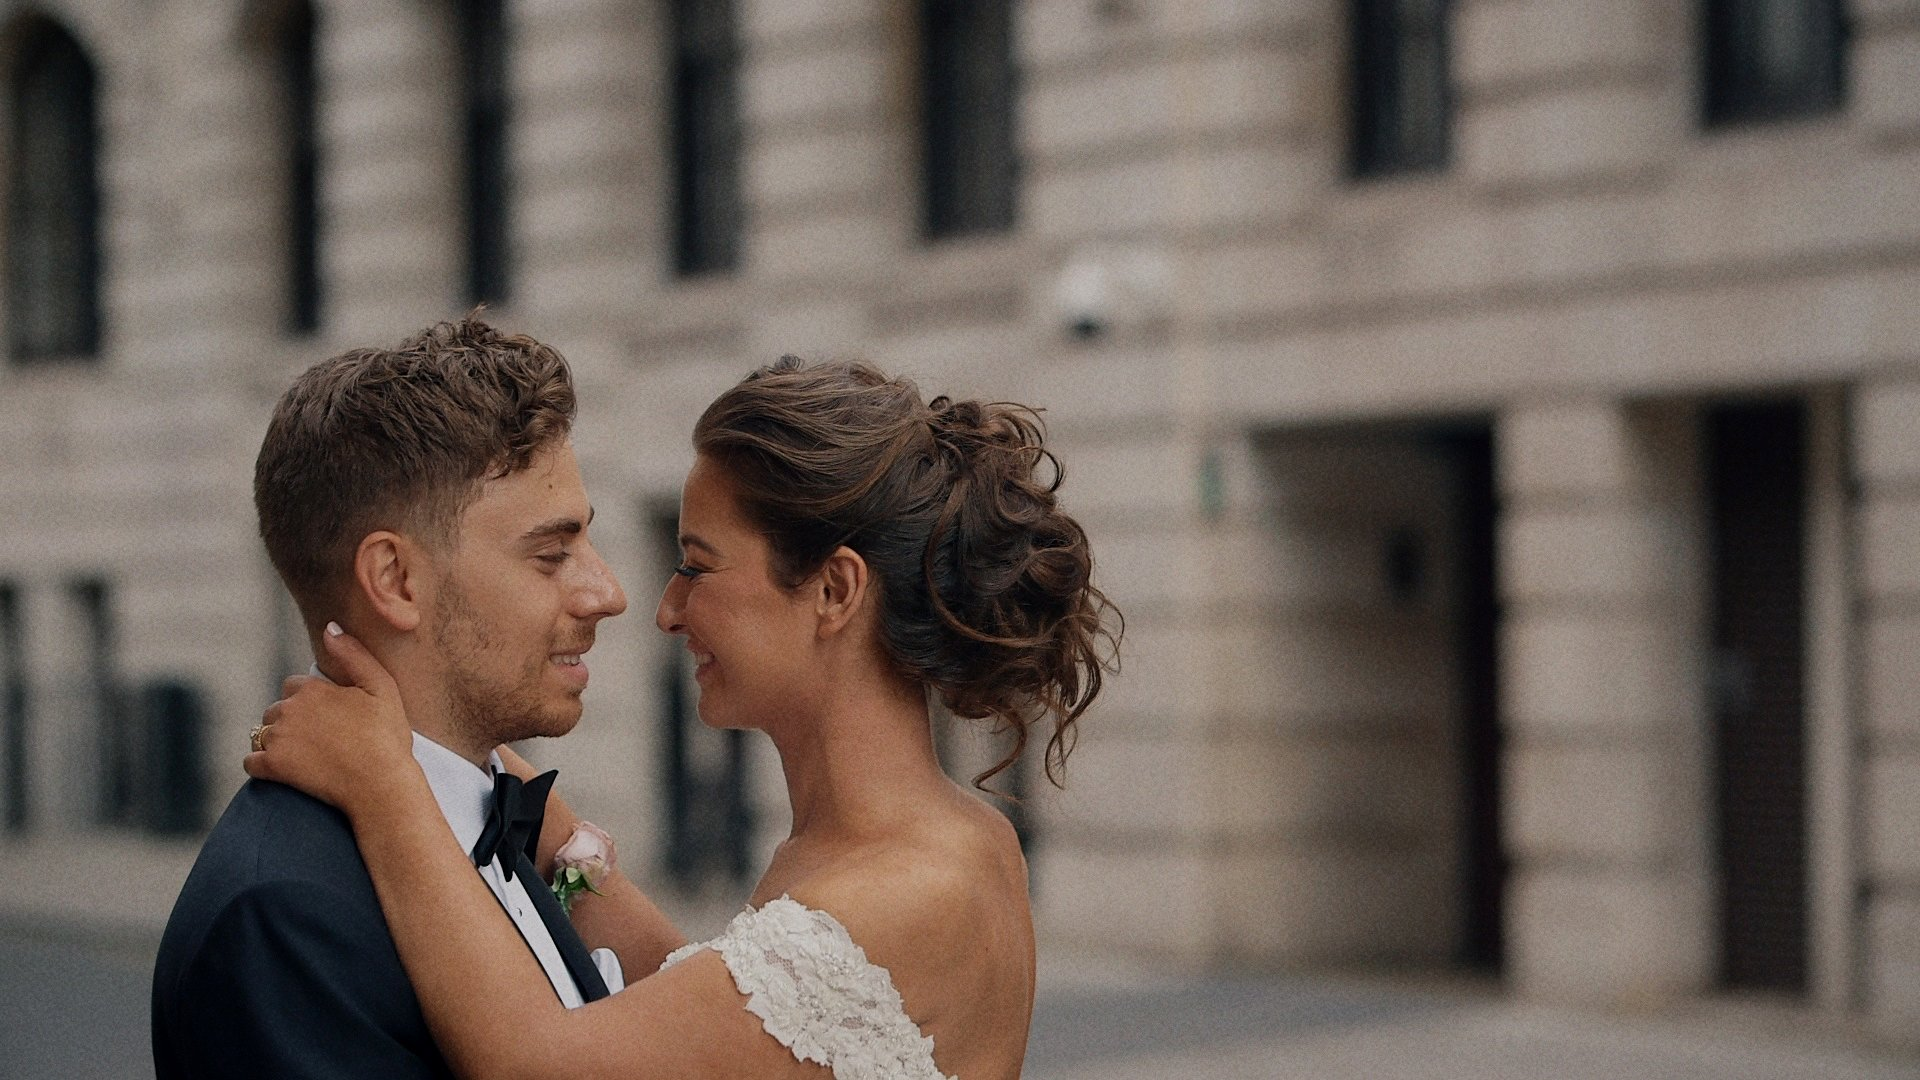 A bride and groom embrace for a kiss outside 8 Northumberland Avenue